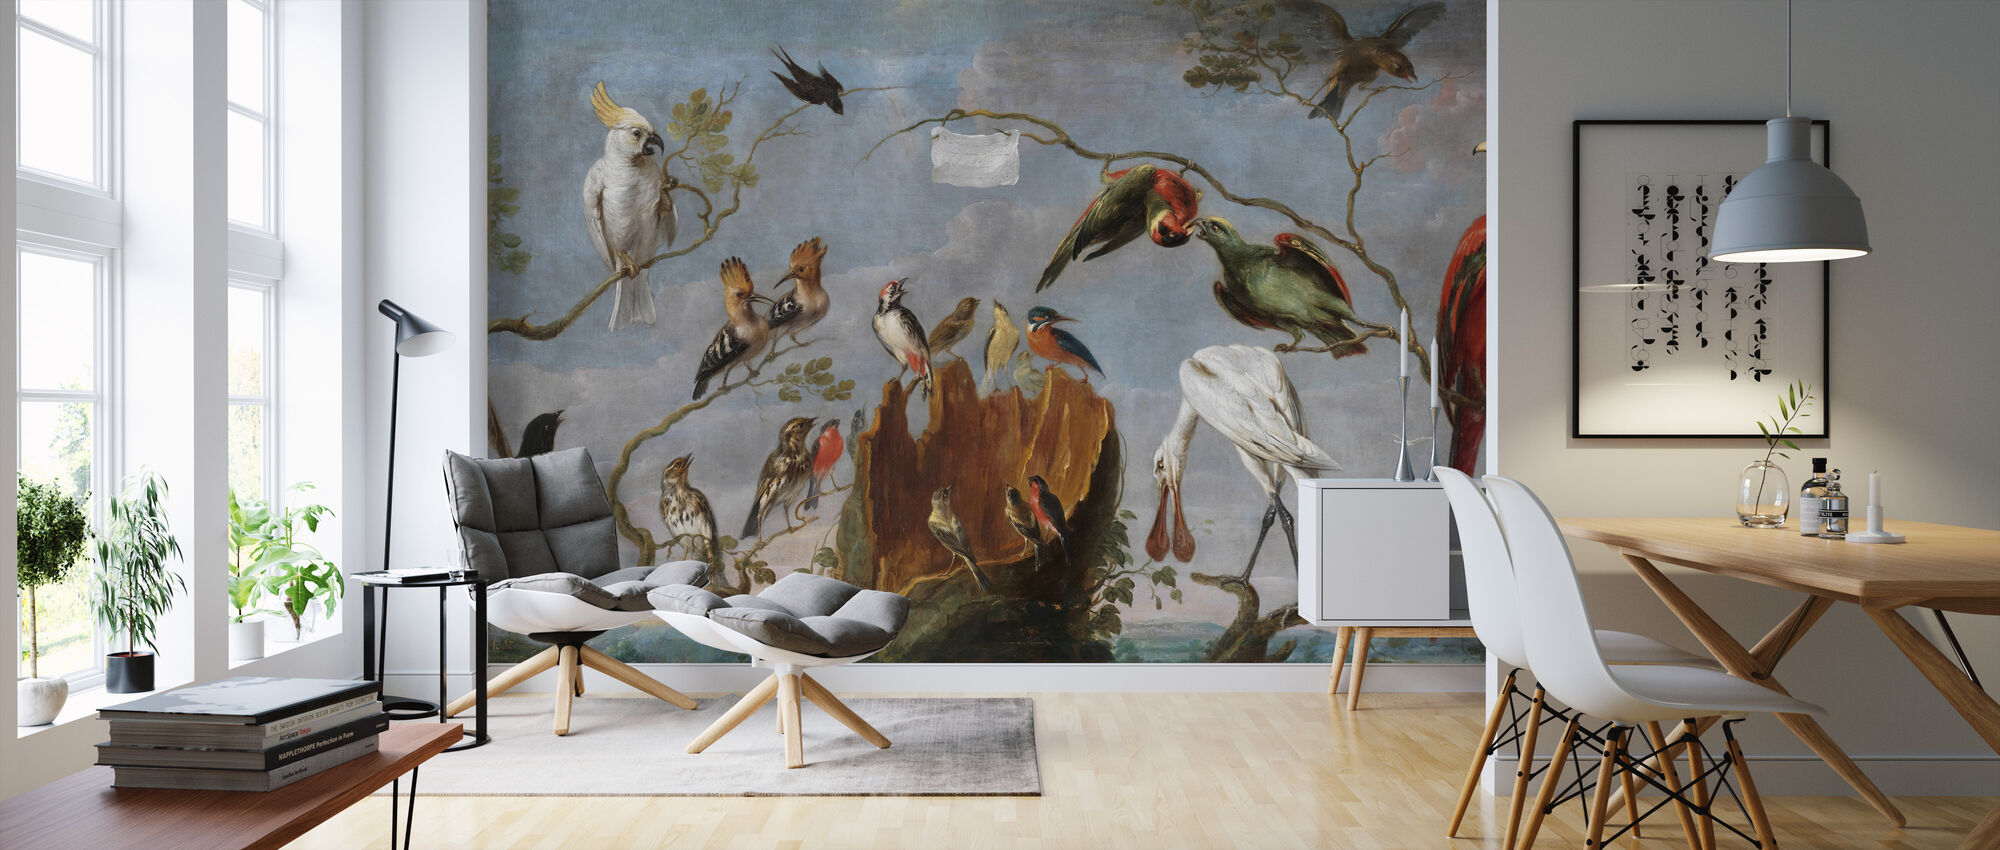 Birds Concert - Frans Snyders - Wallpaper - Living Room